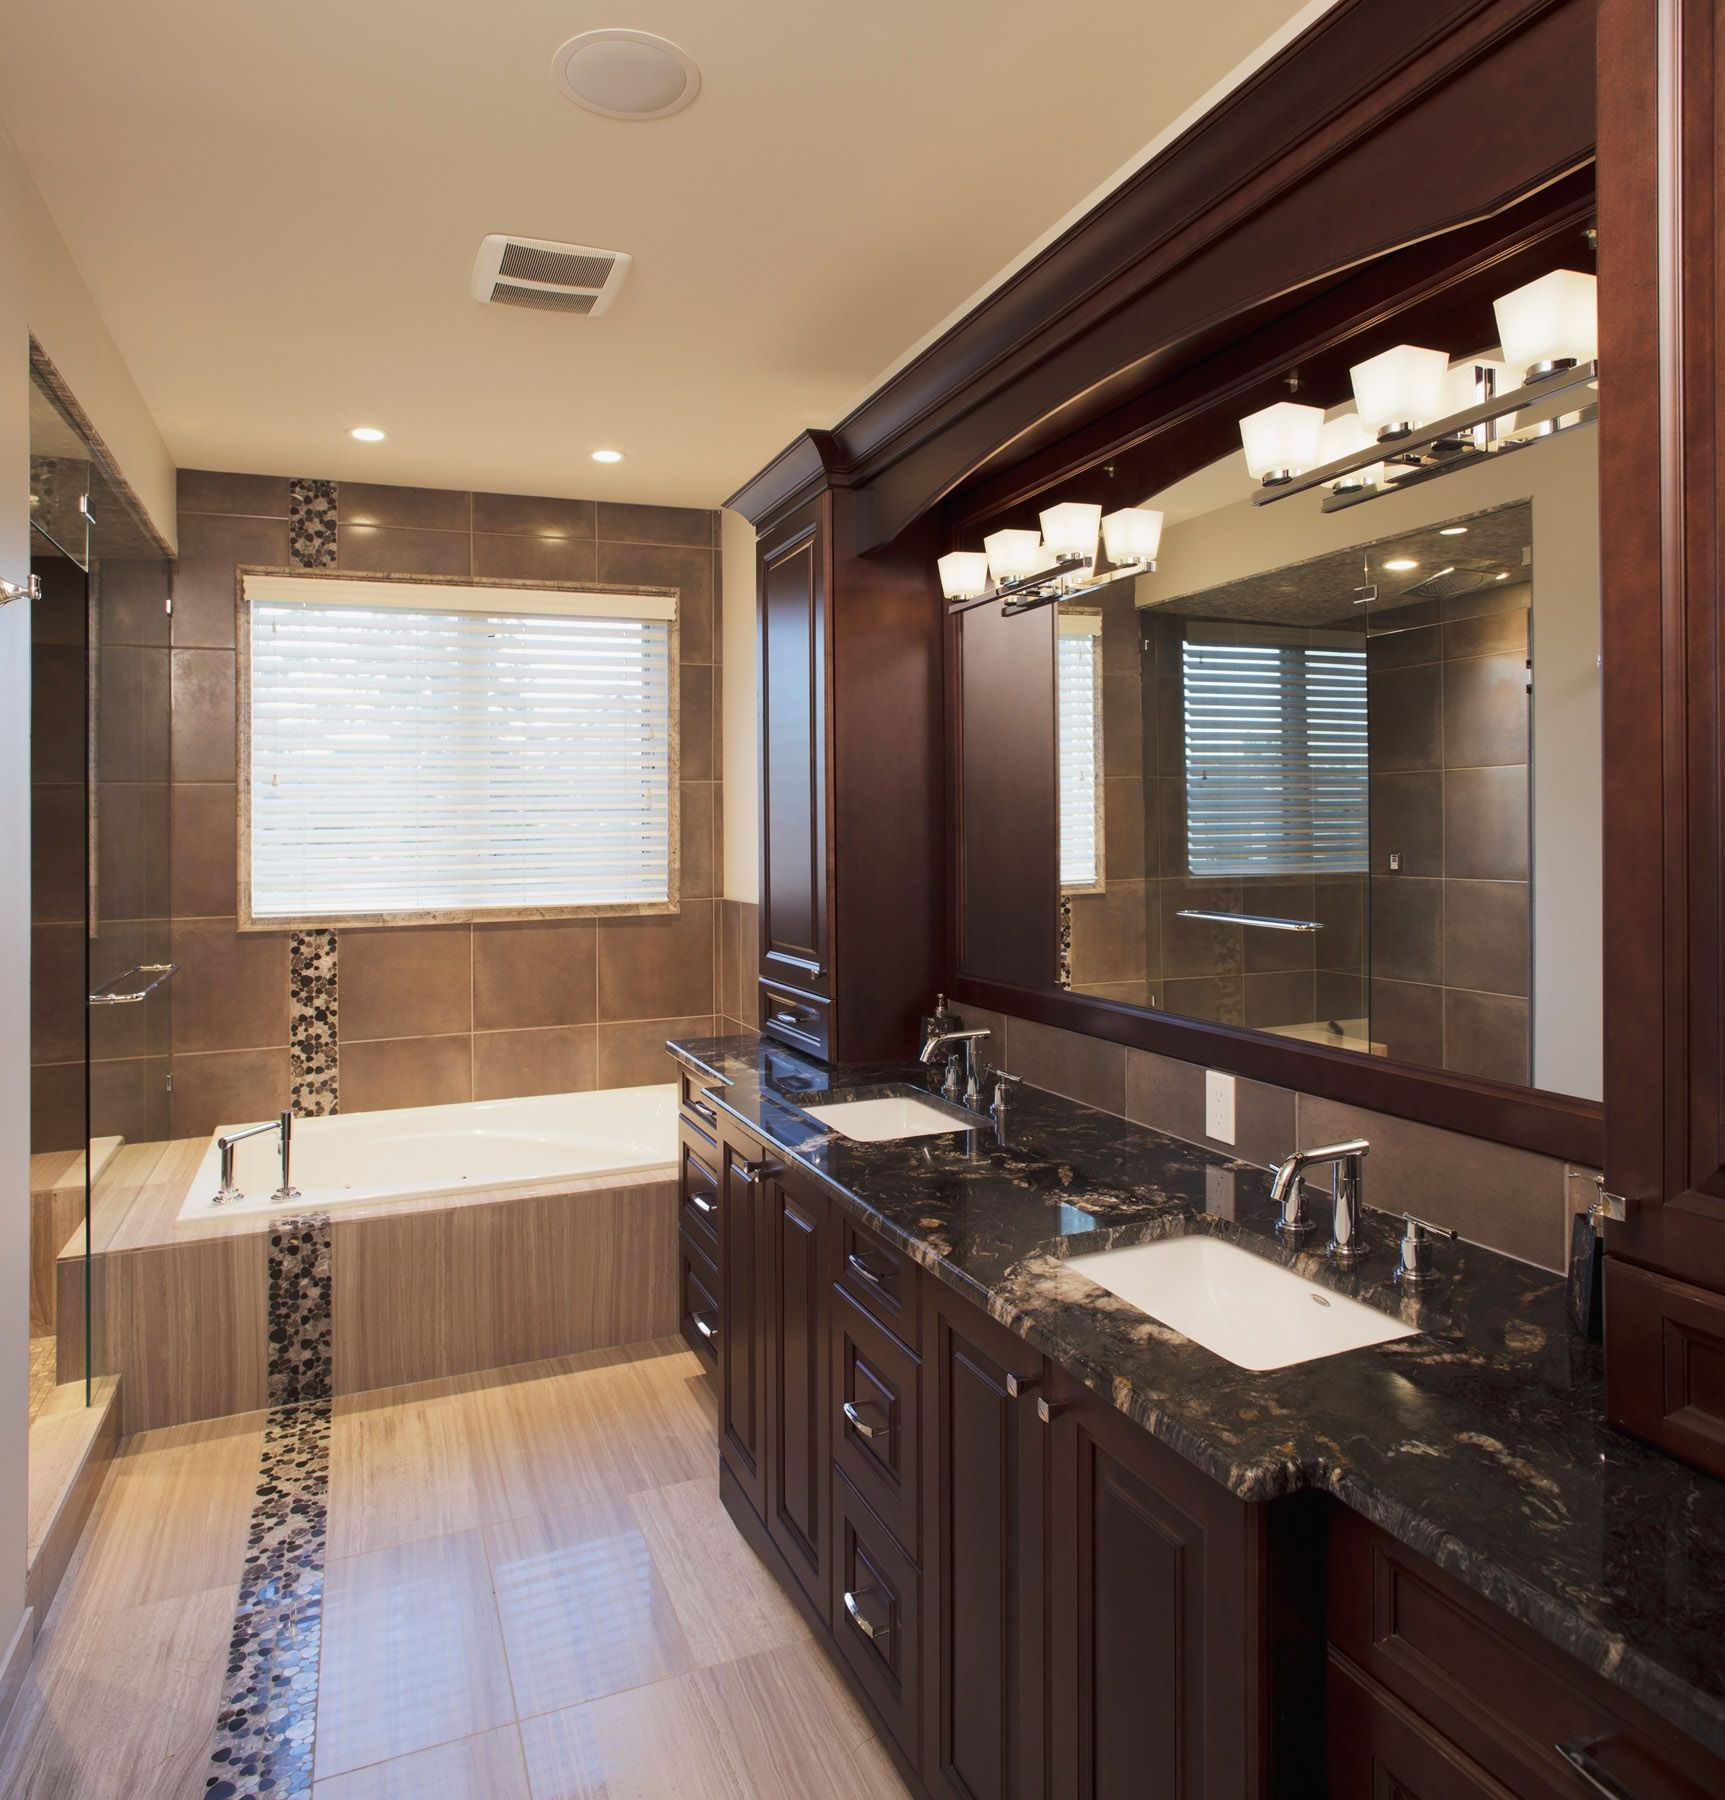 6 Tips For A Kitchen You Can Love For A Lifetime: Titanium Gold Schist Bathroom Countertop With Dark Cherry